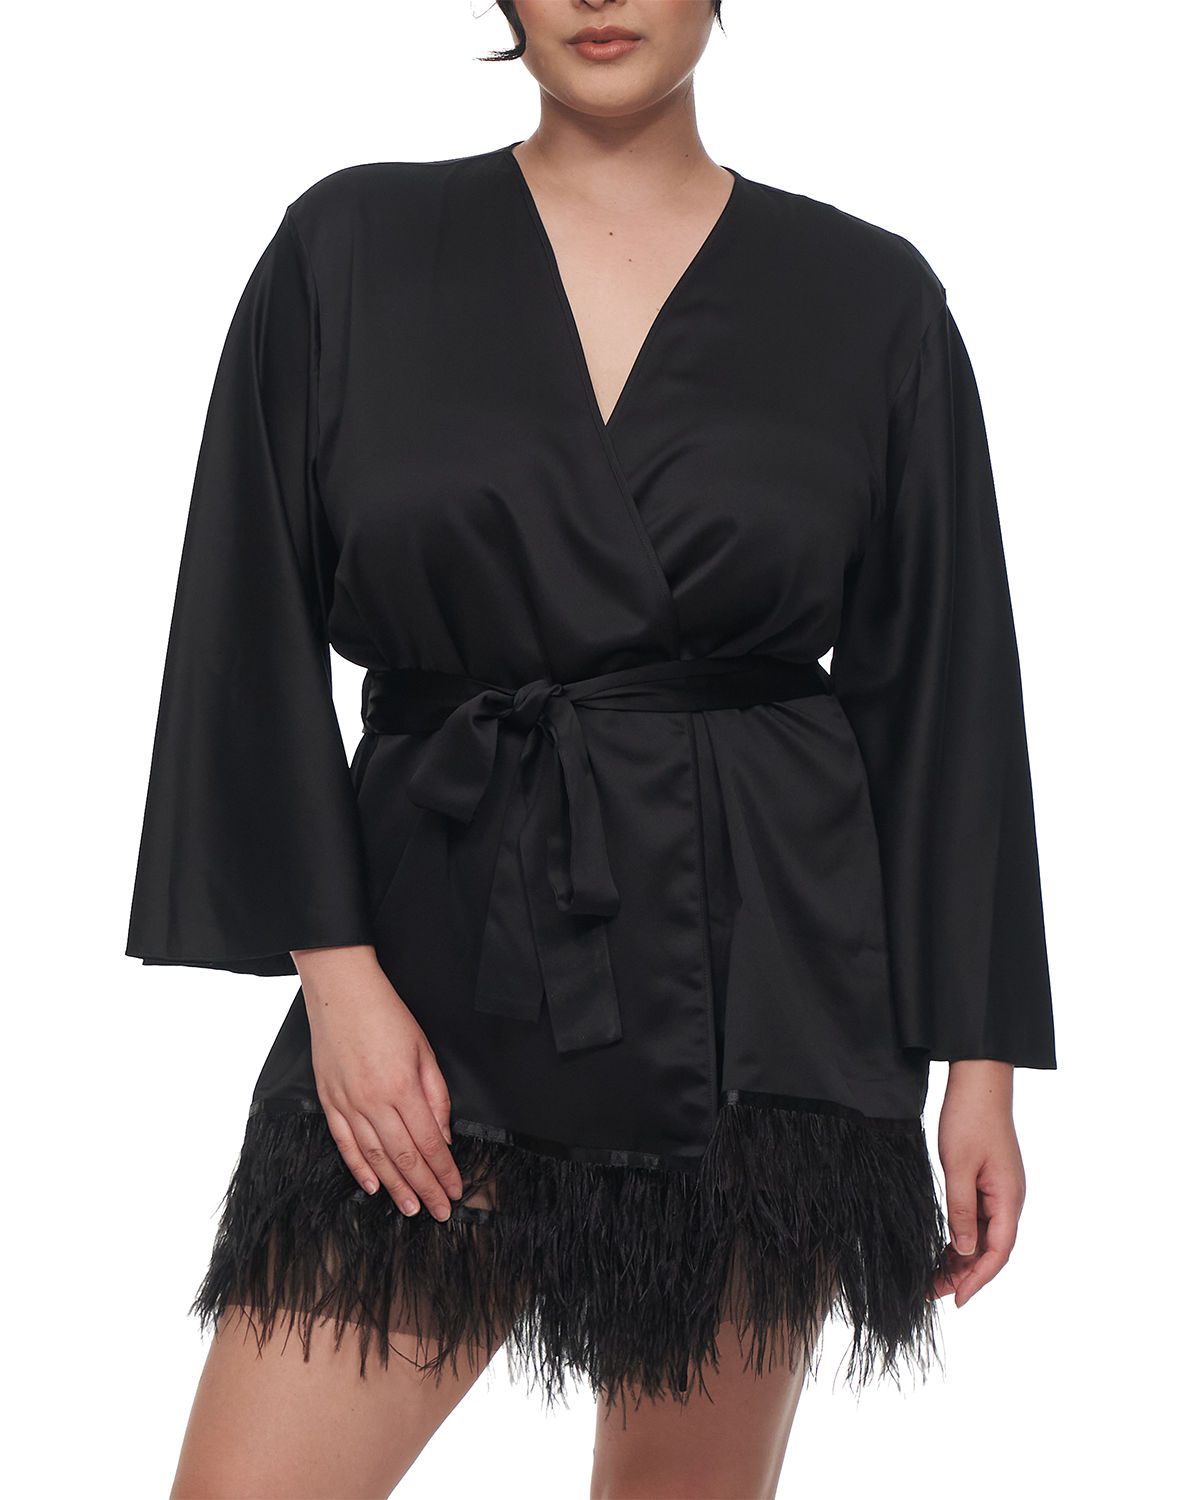 Rya Collection SWAN FEATHER-HEM ROBE, INCLUSIVE SIZING